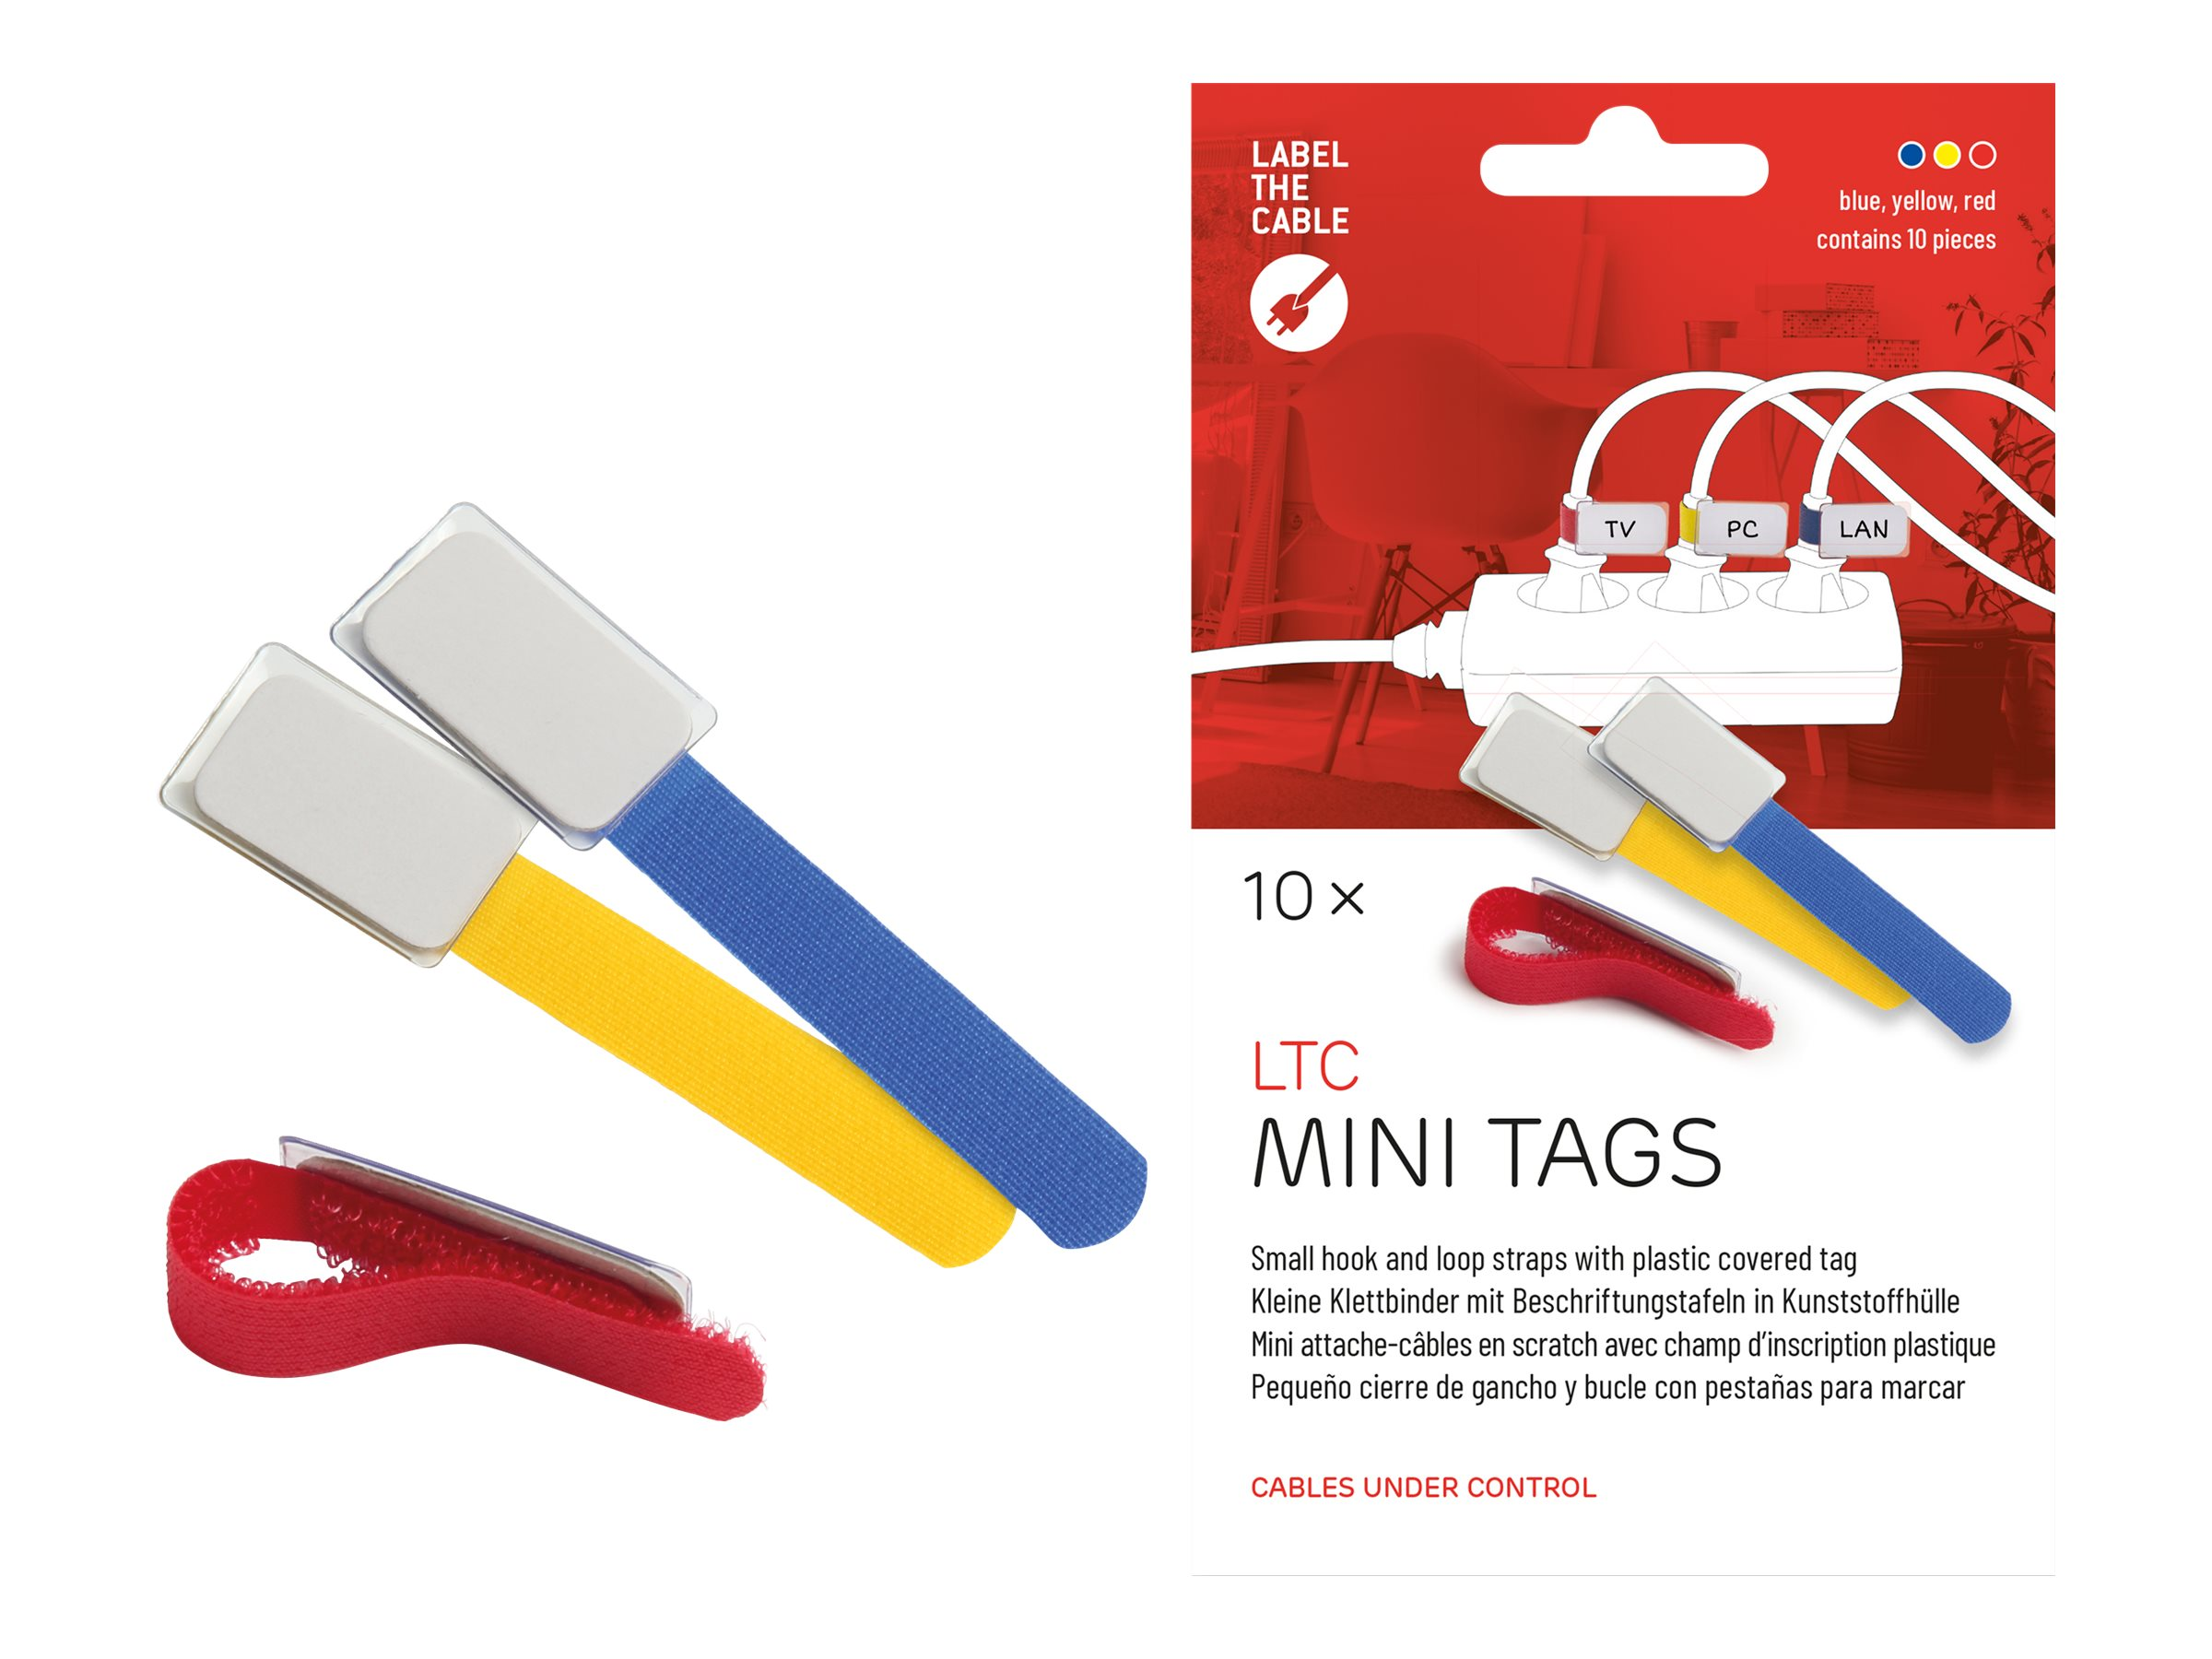 Label-the-cable LTC MINI TAGS - Draht-/Kabel-Marker - 9 cm - Blau, Gelb, Rot (Packung mit 10)